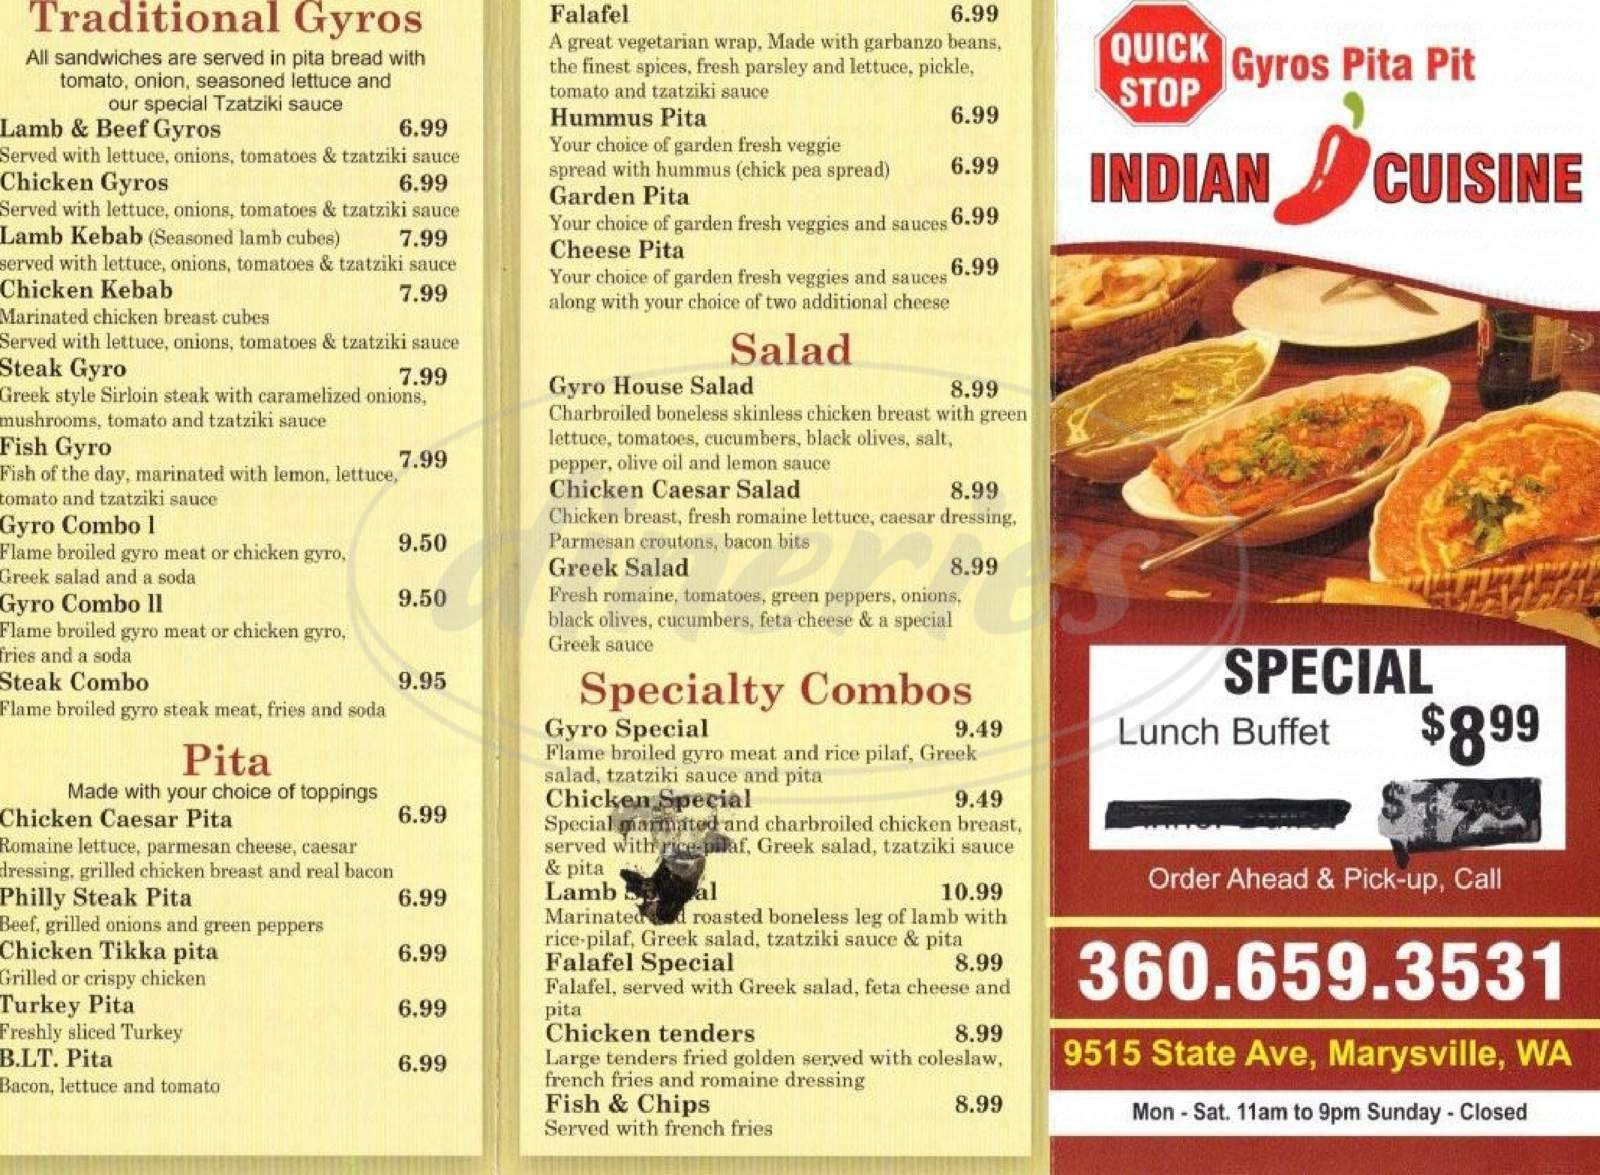 menu for Quick Stop Gyro Pita Pit and Indian Cuisine